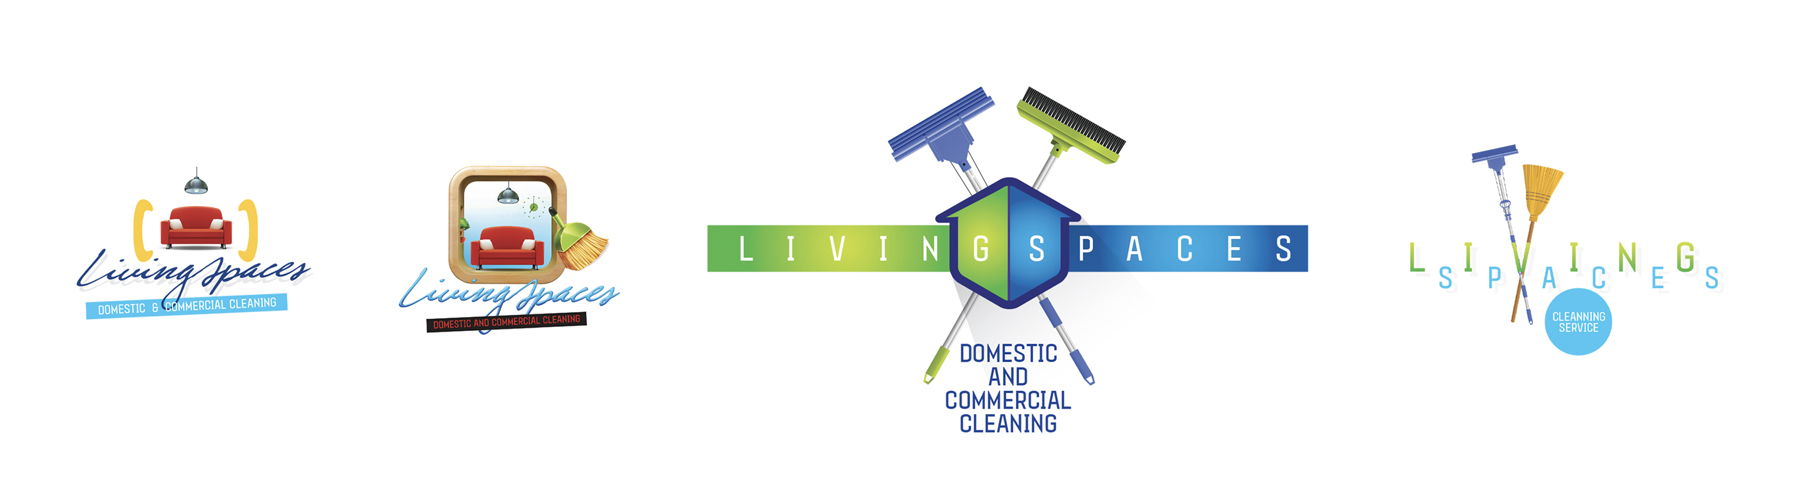 Living Spaces Logo for Sarah Campbell on white background Isolated